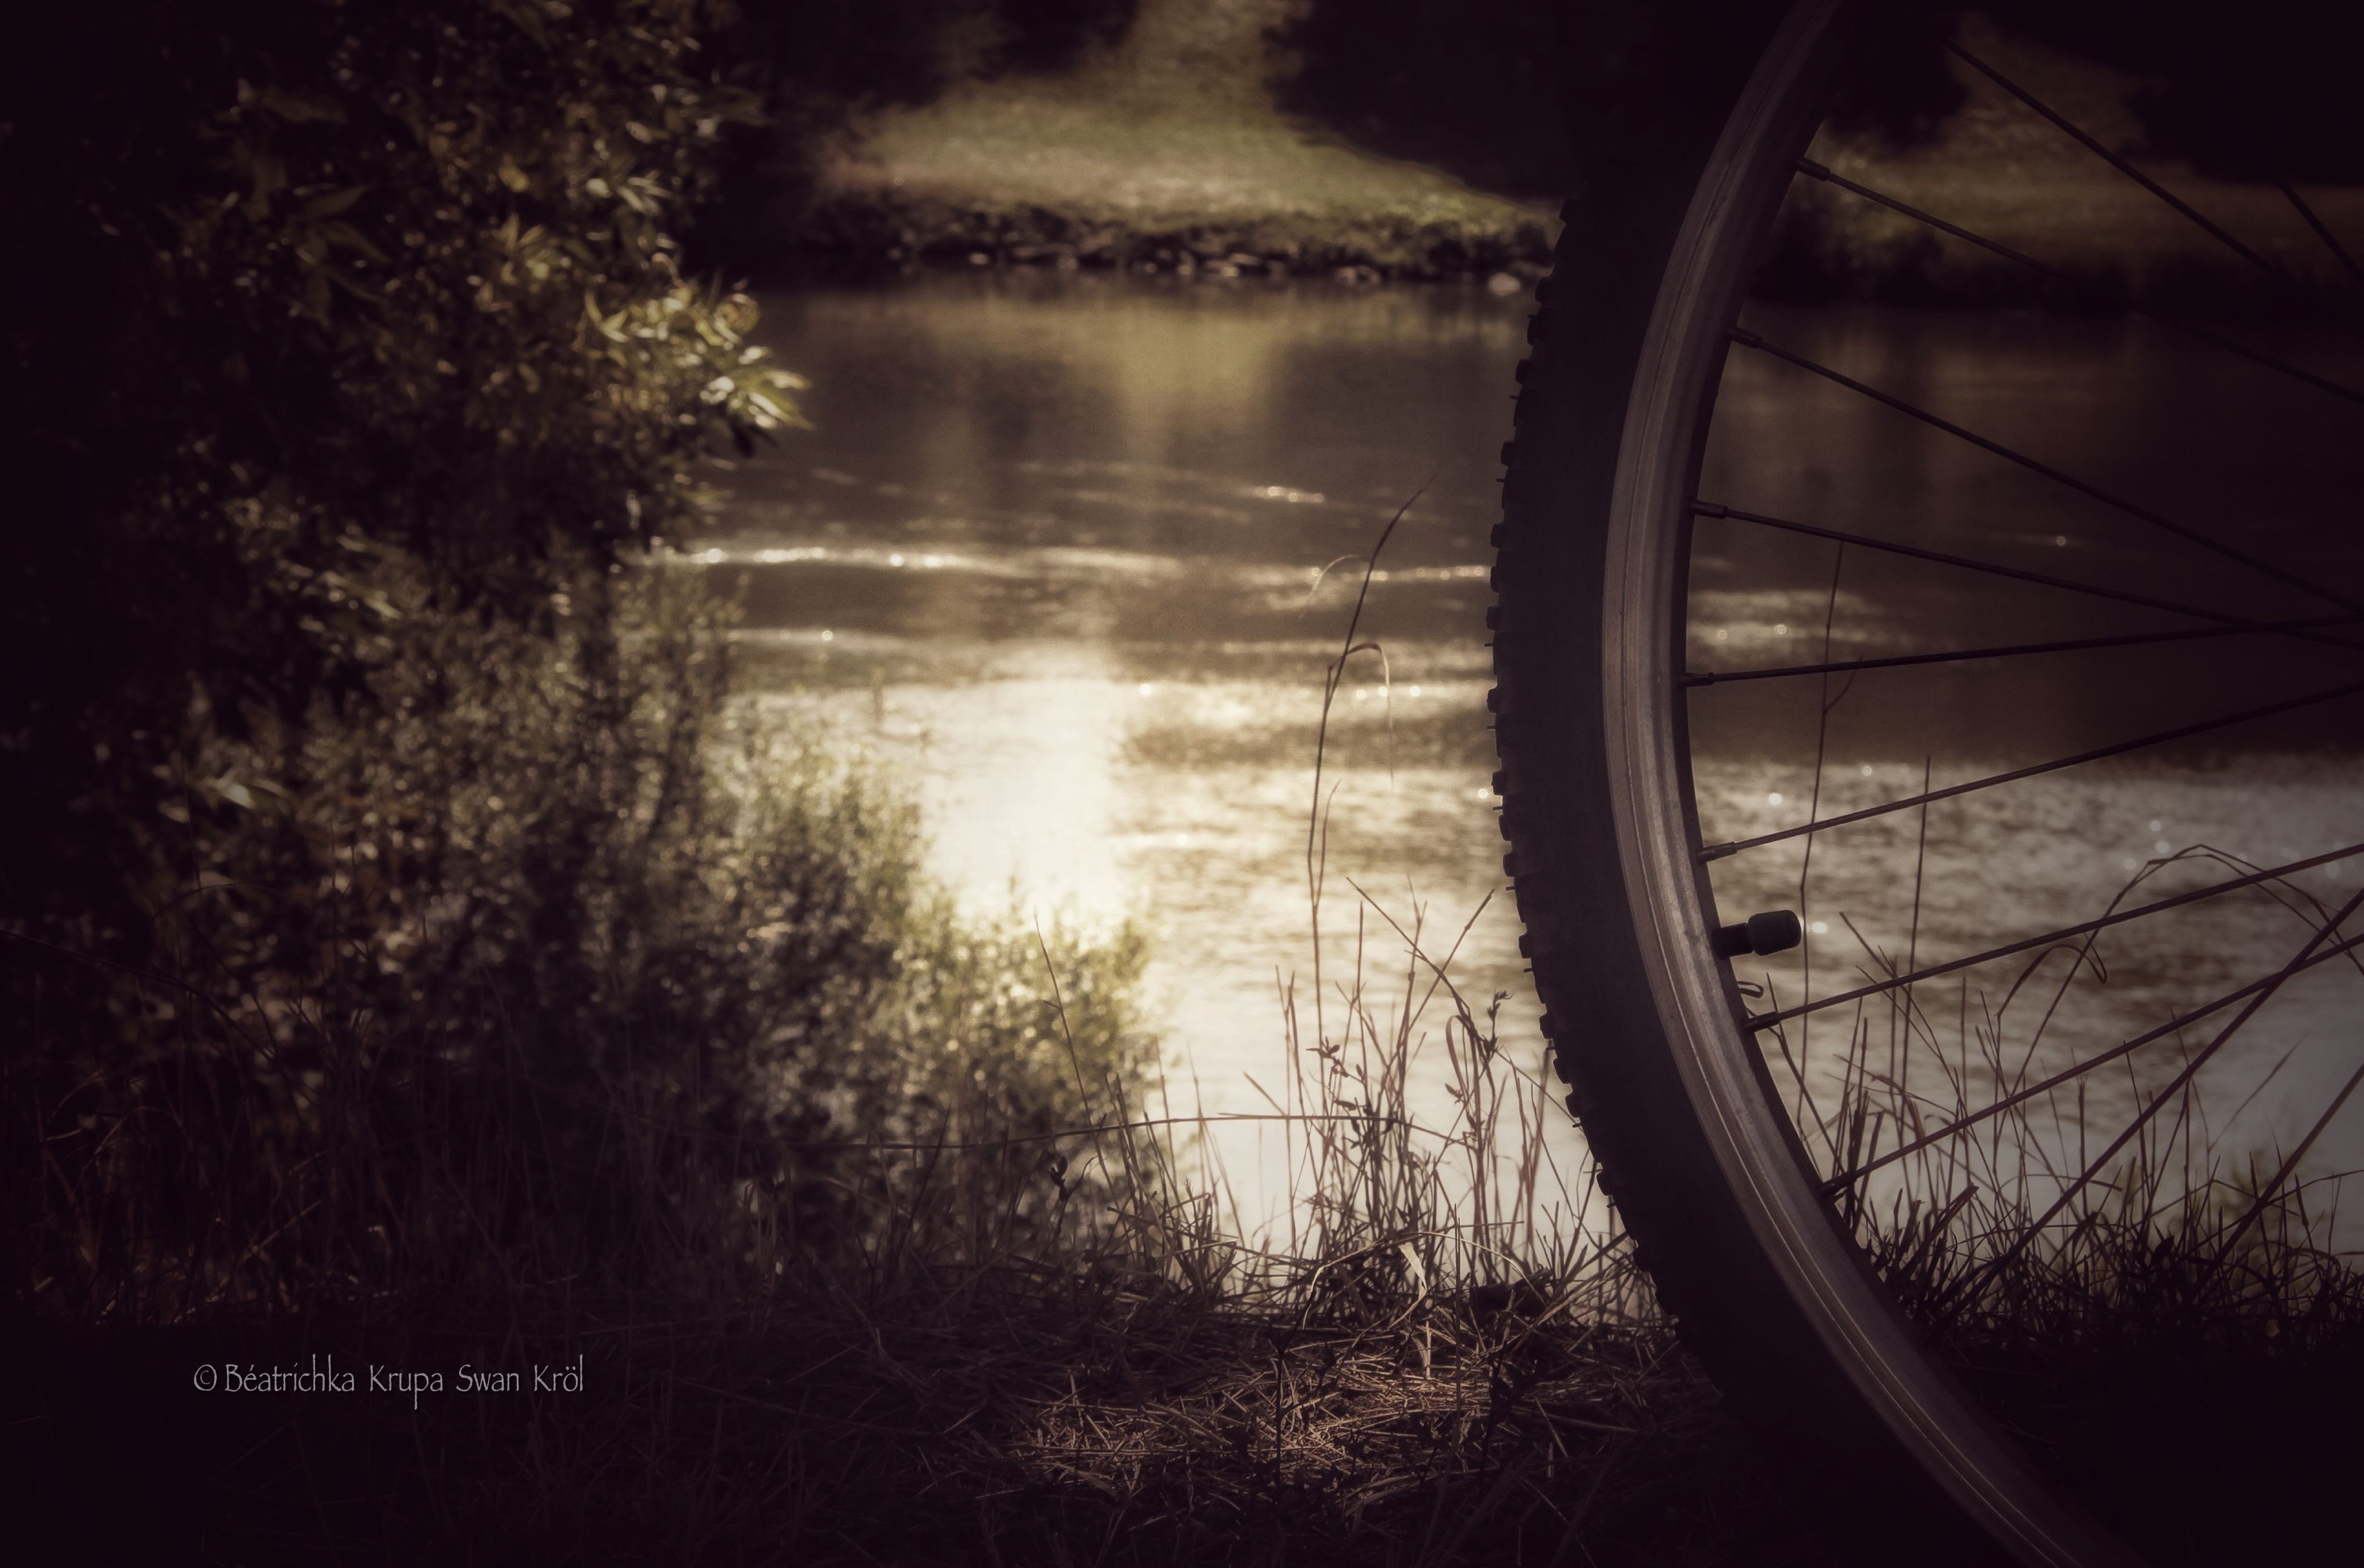 transportation, water, mode of transport, reflection, tree, lake, bicycle, land vehicle, tranquility, river, nature, tranquil scene, part of, side-view mirror, beauty in nature, travel, scenics, cropped, lakeshore, outdoors